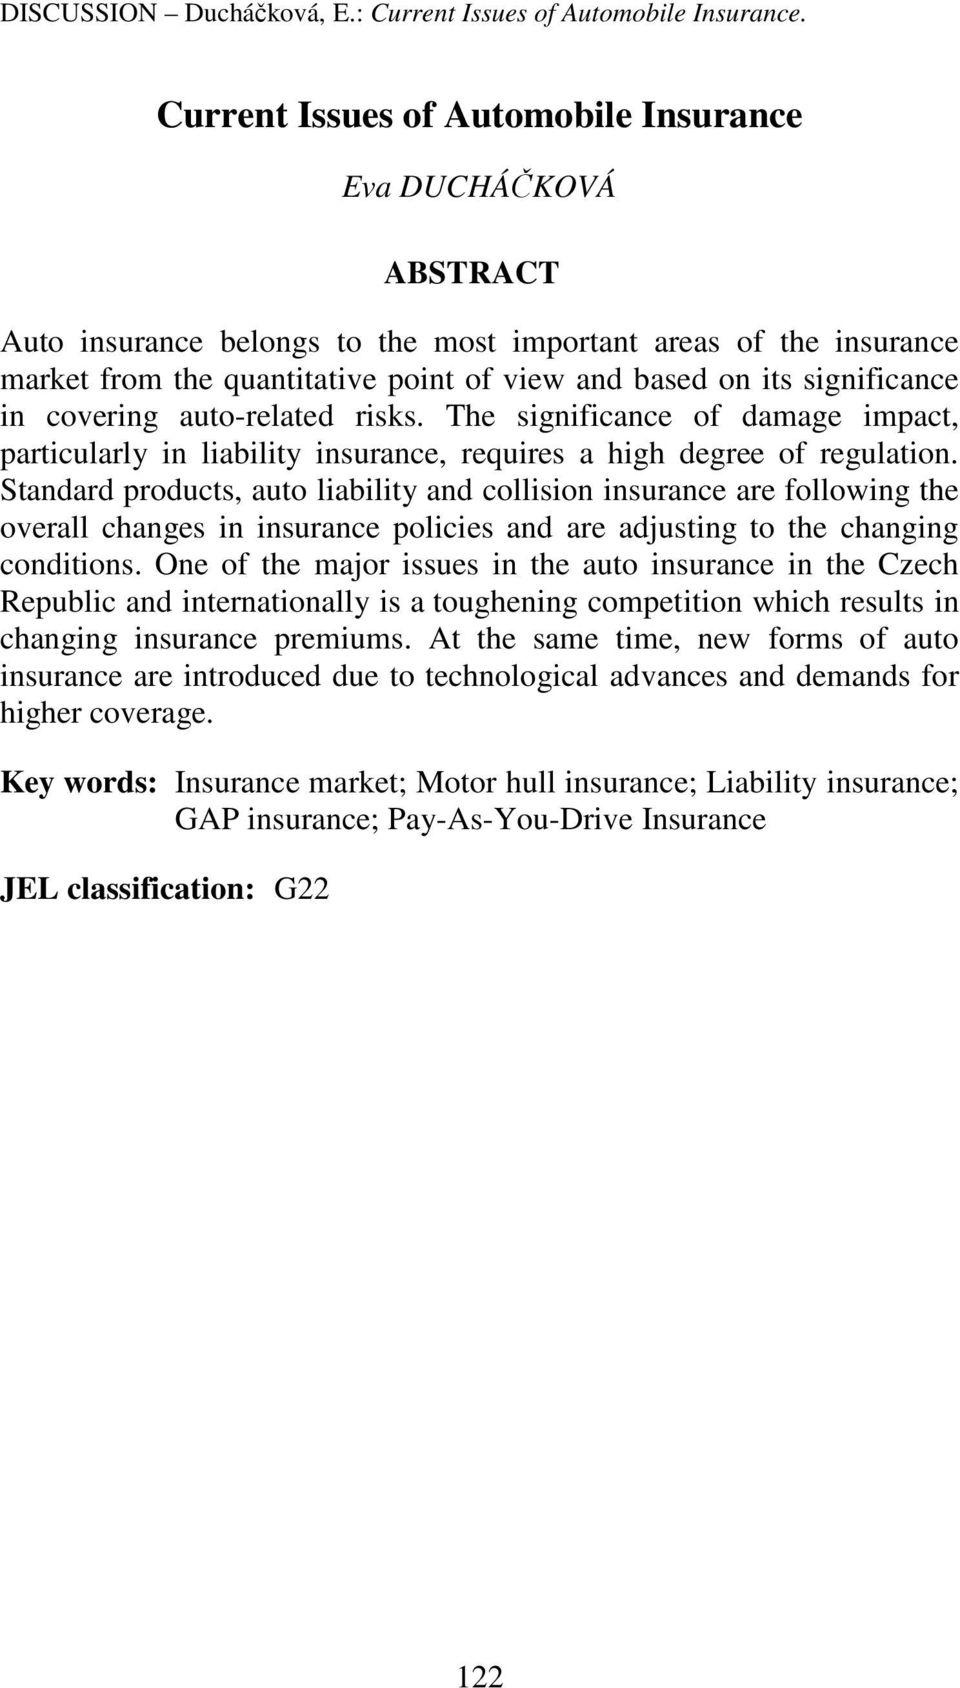 significance in covering auto-related risks. The significance of damage impact, particularly in liability insurance, requires a high degree of regulation.